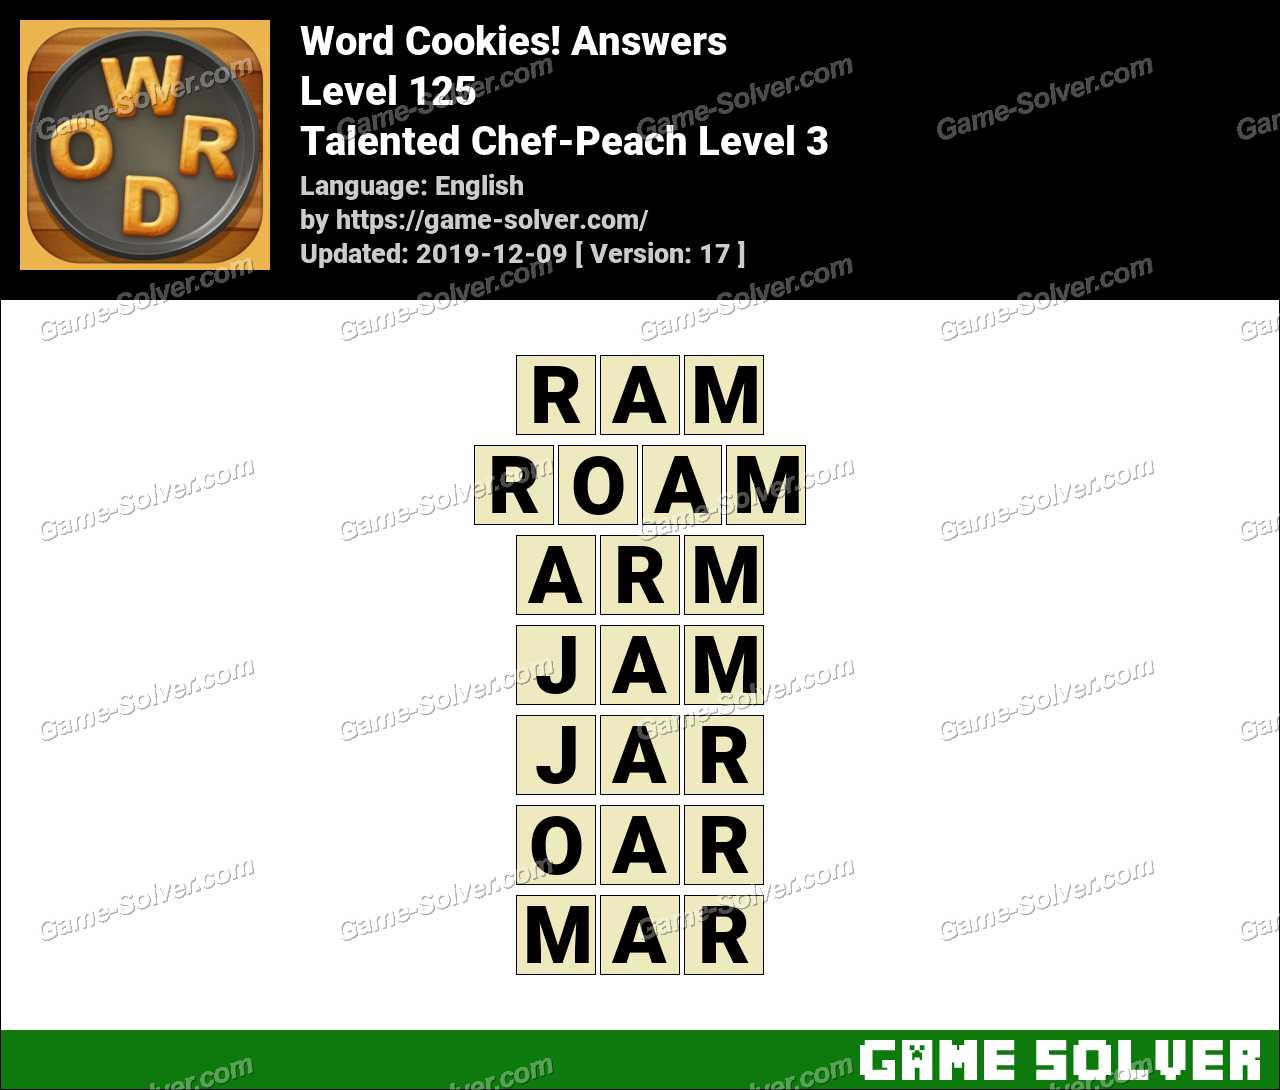 Word Cookies Talented Chef-Peach Level 3 Answers